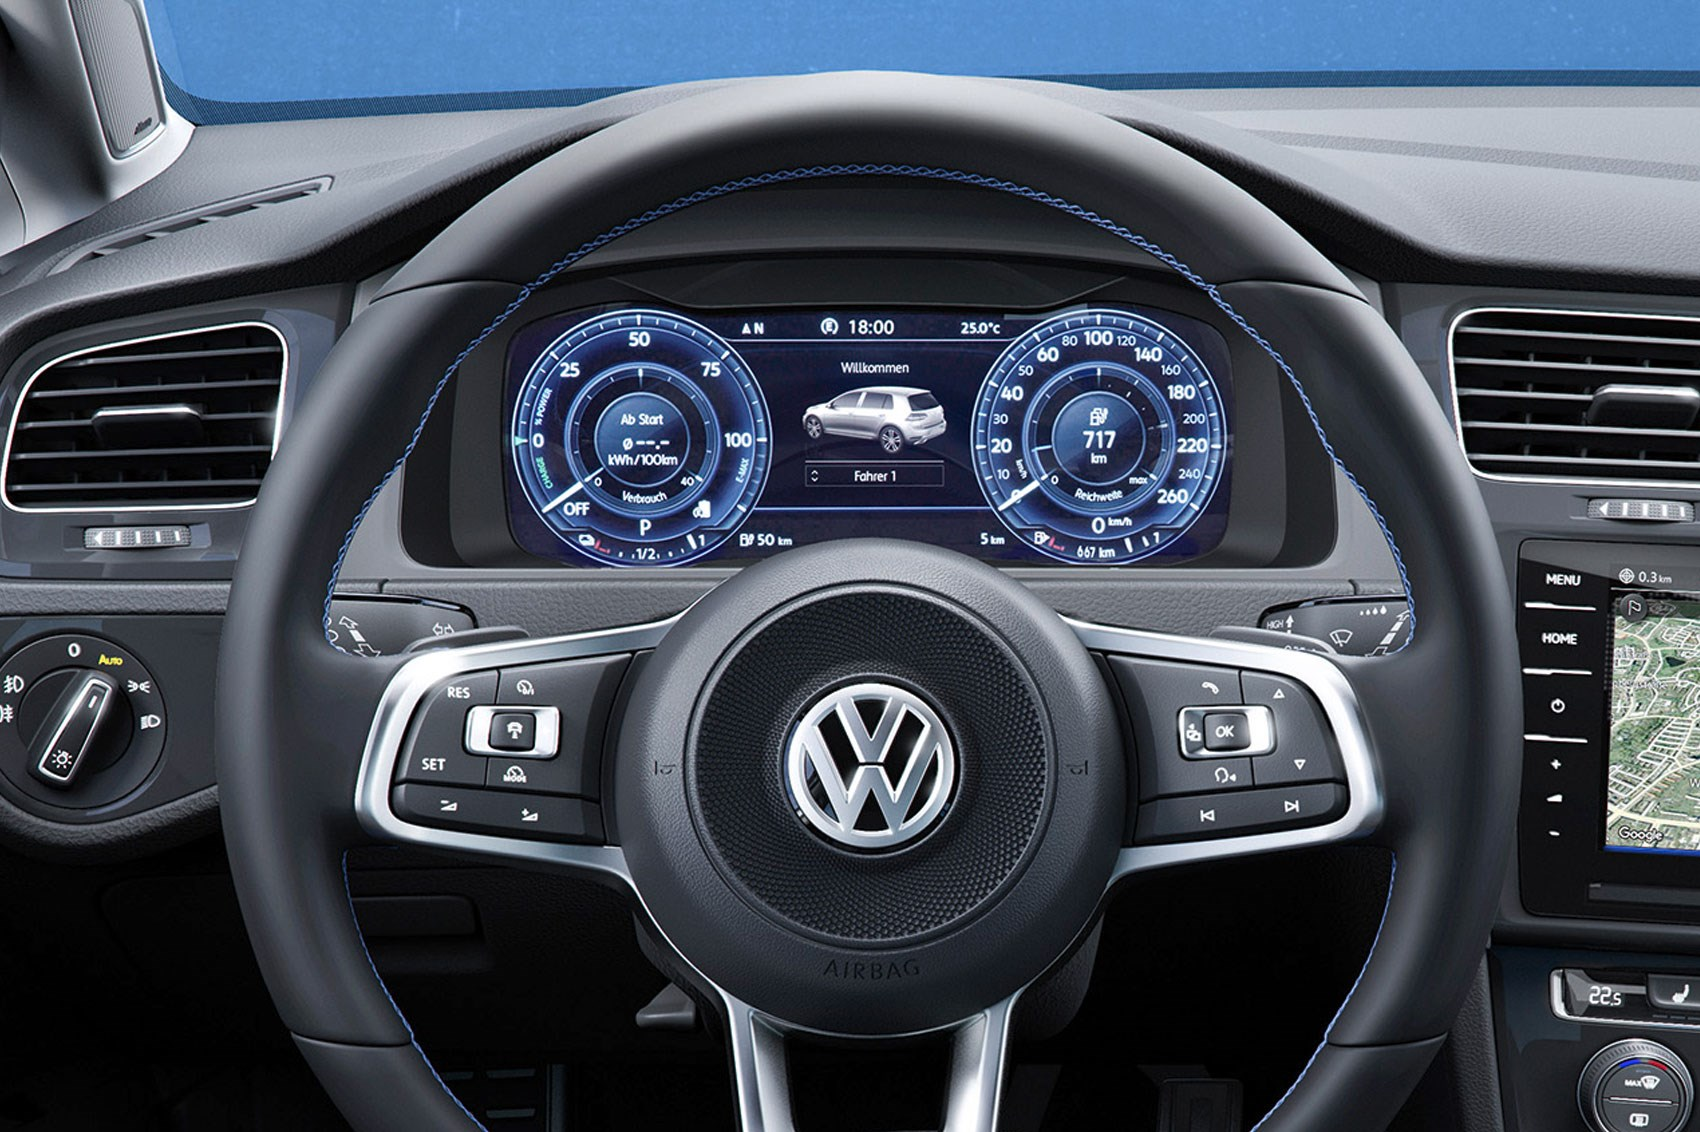 Car Display Wallpaper Vw Seven Things You Need To Know About The Facelifted 2017 Vw